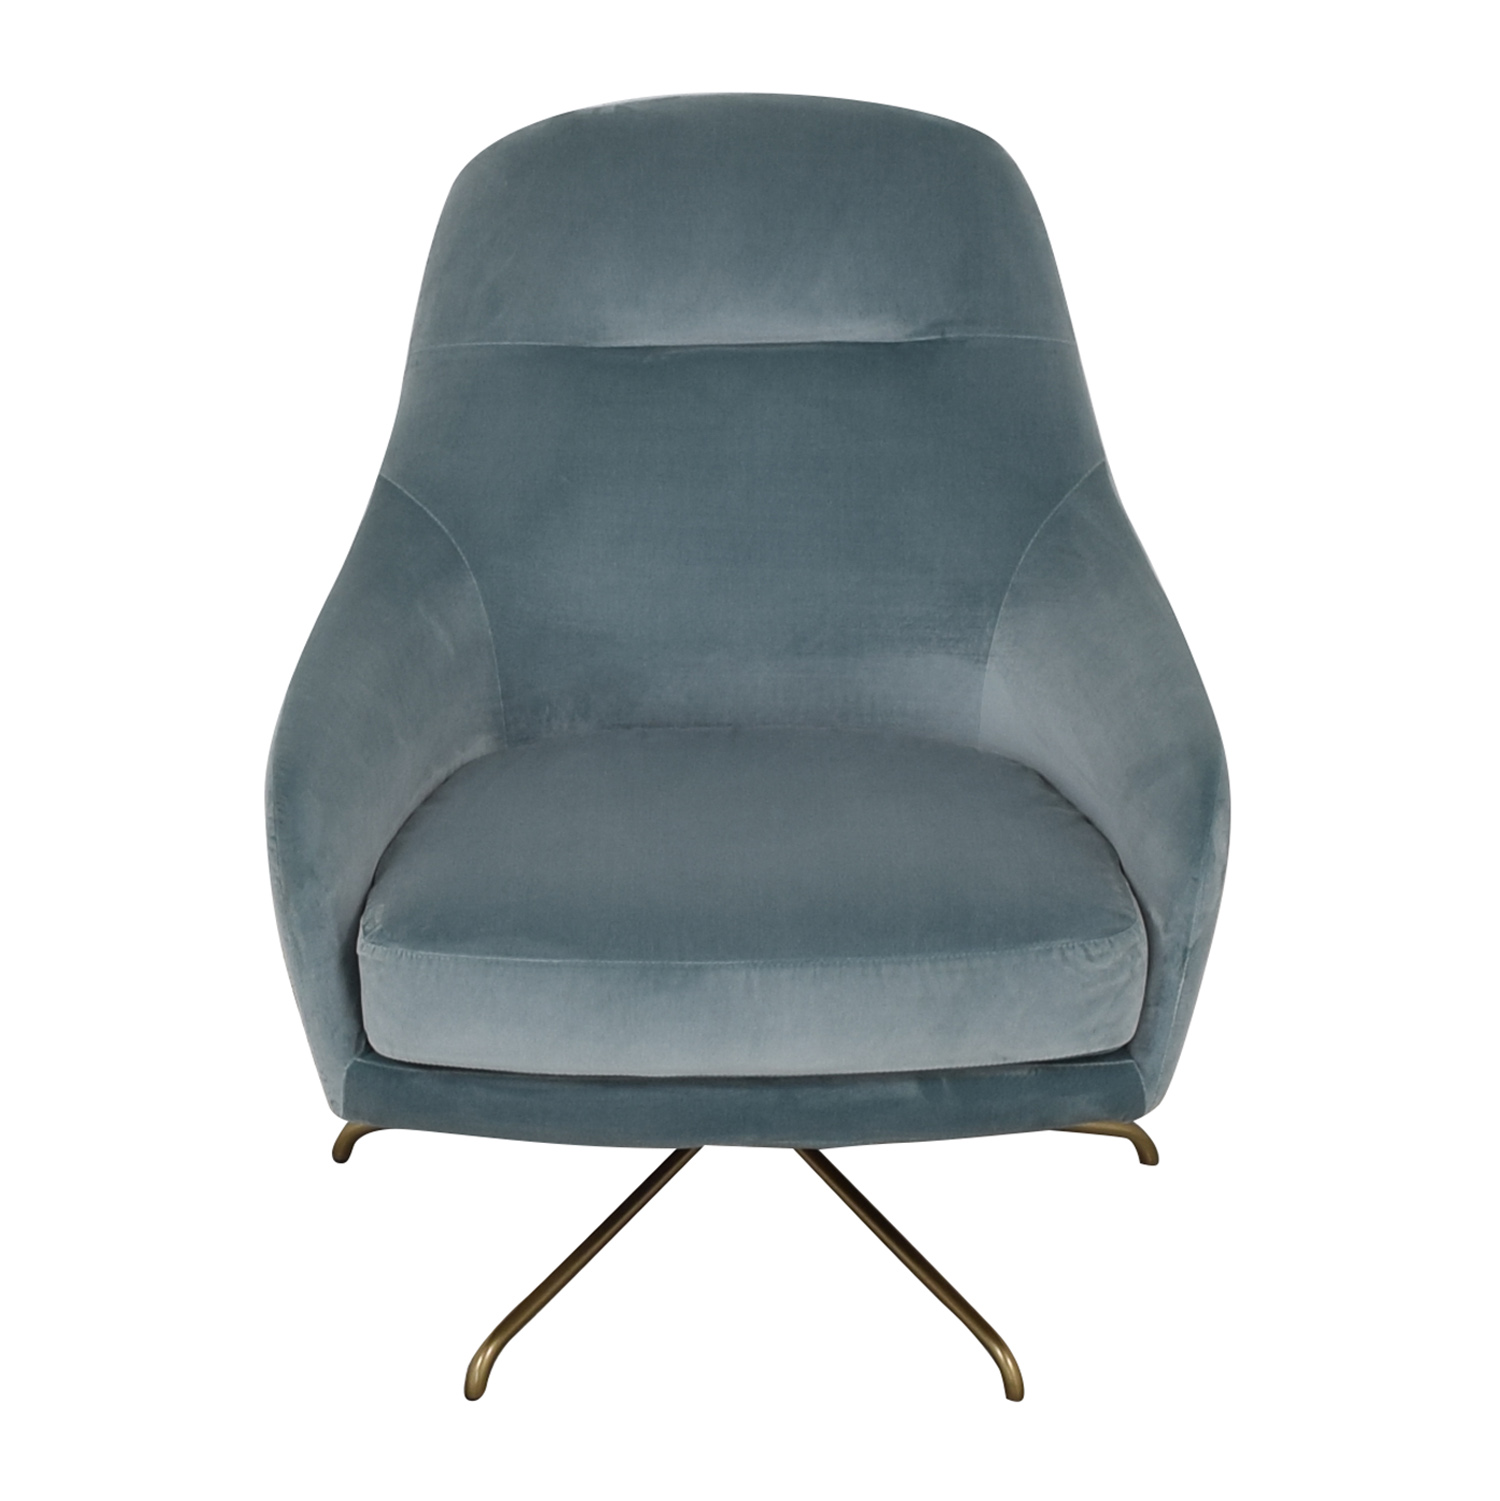 West Elm West Elm Valentina Swivel Chair used